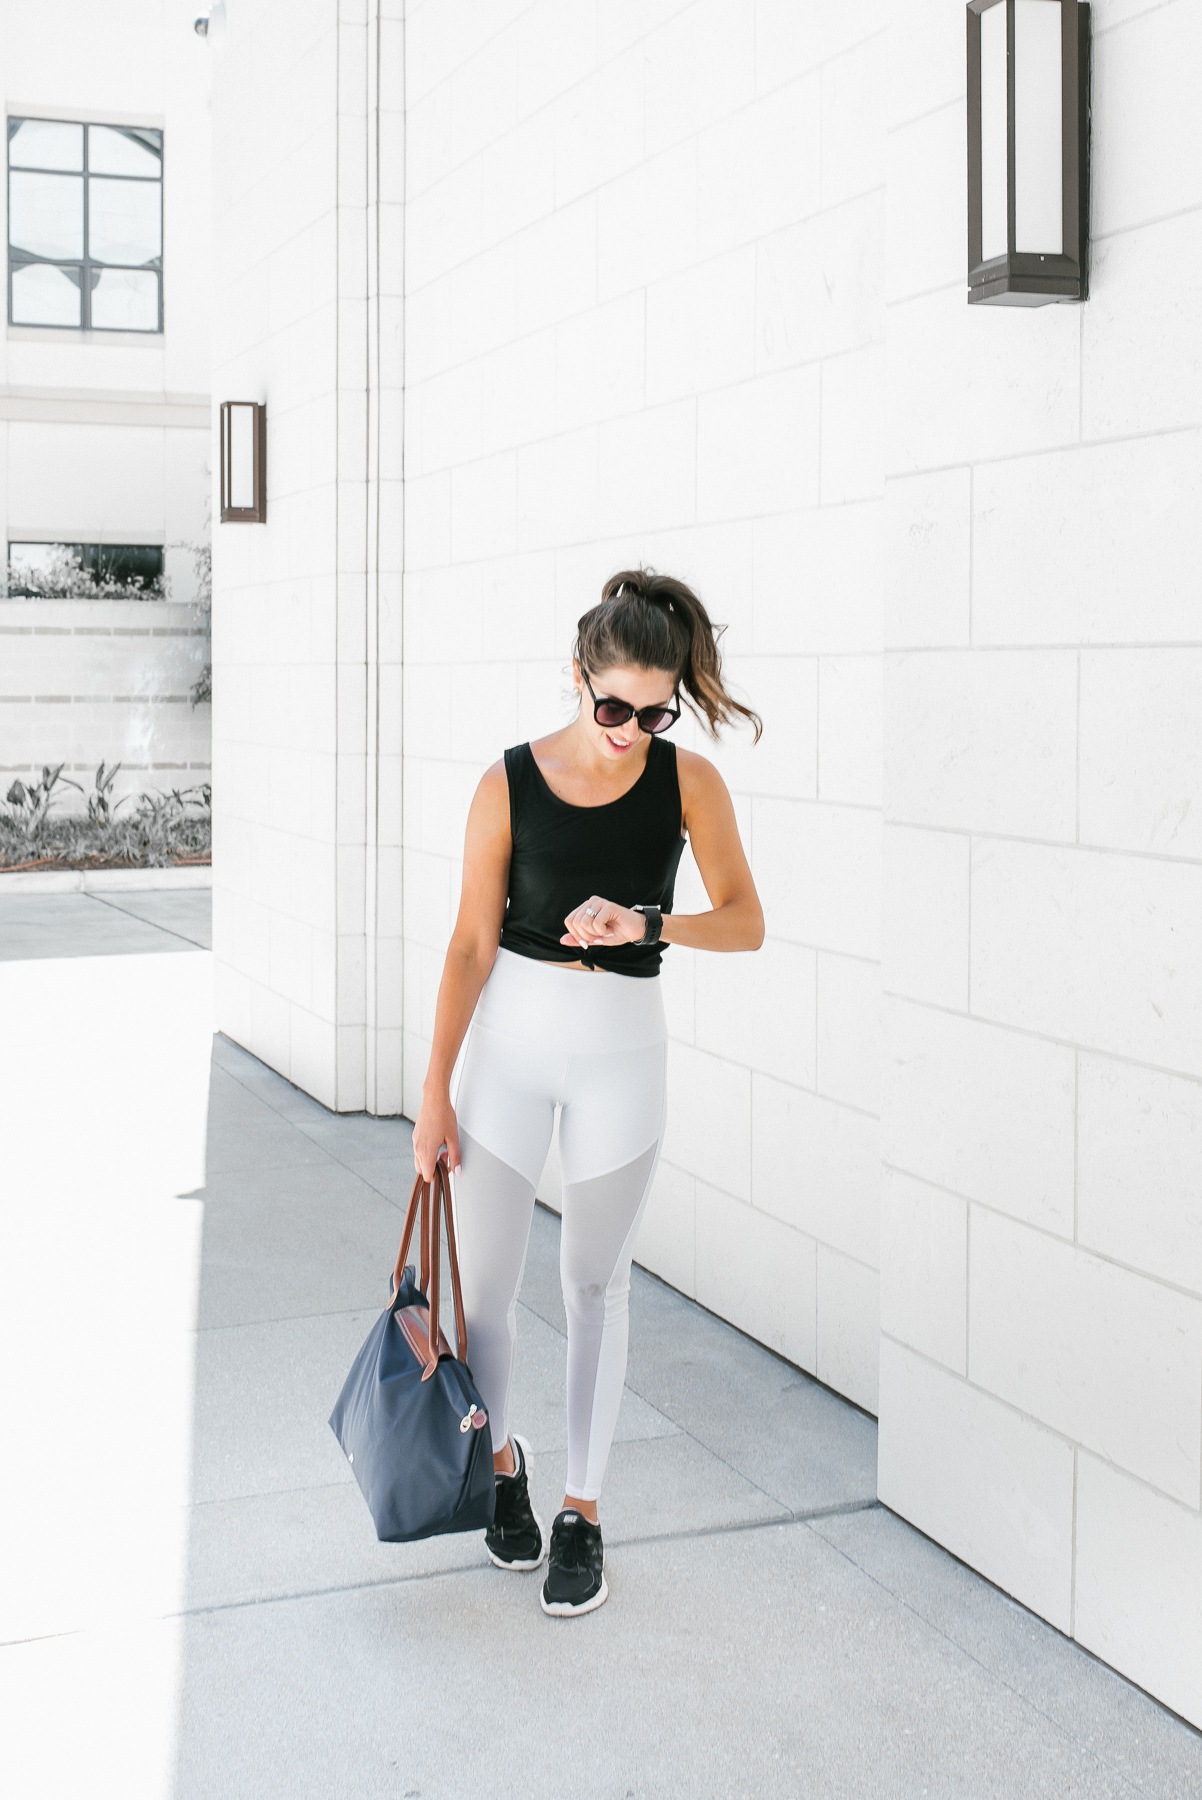 Dress Up Buttercup, Dede Raad,Fashion Blogger, Houston Blogger, Workout clothes, Equinox, White Leggings, Gym attire